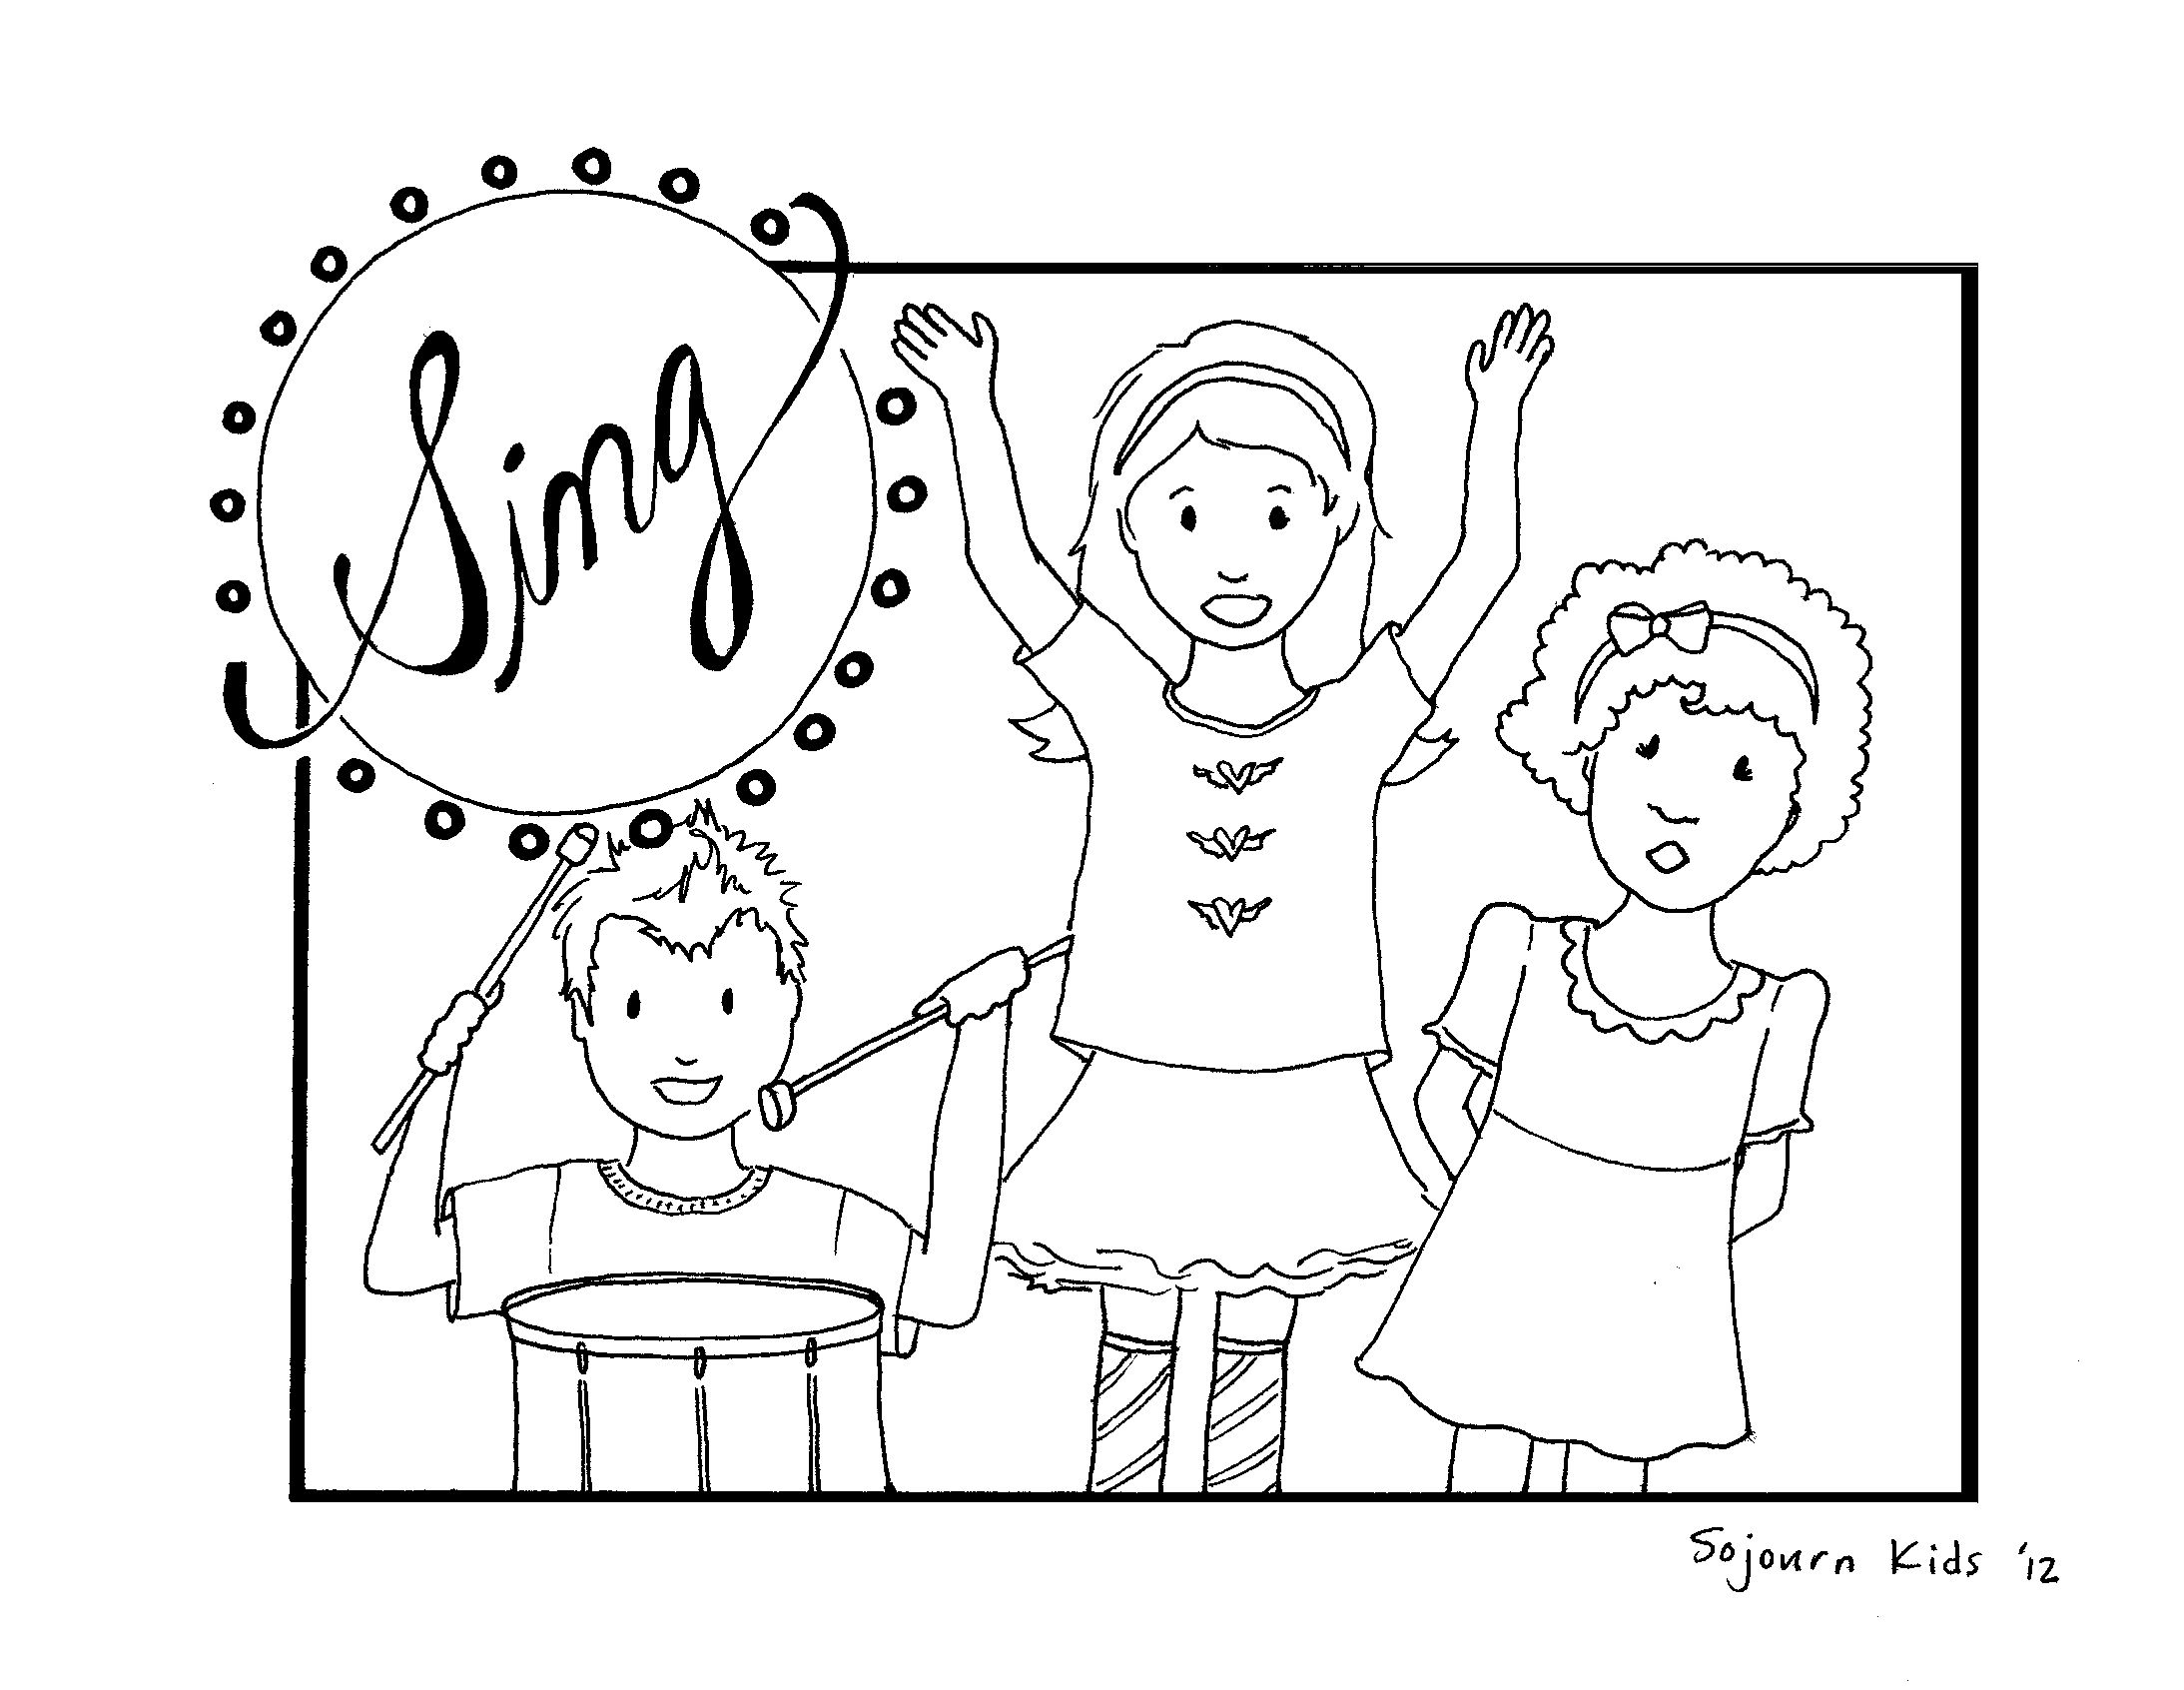 Children's Free Coloring Pictures